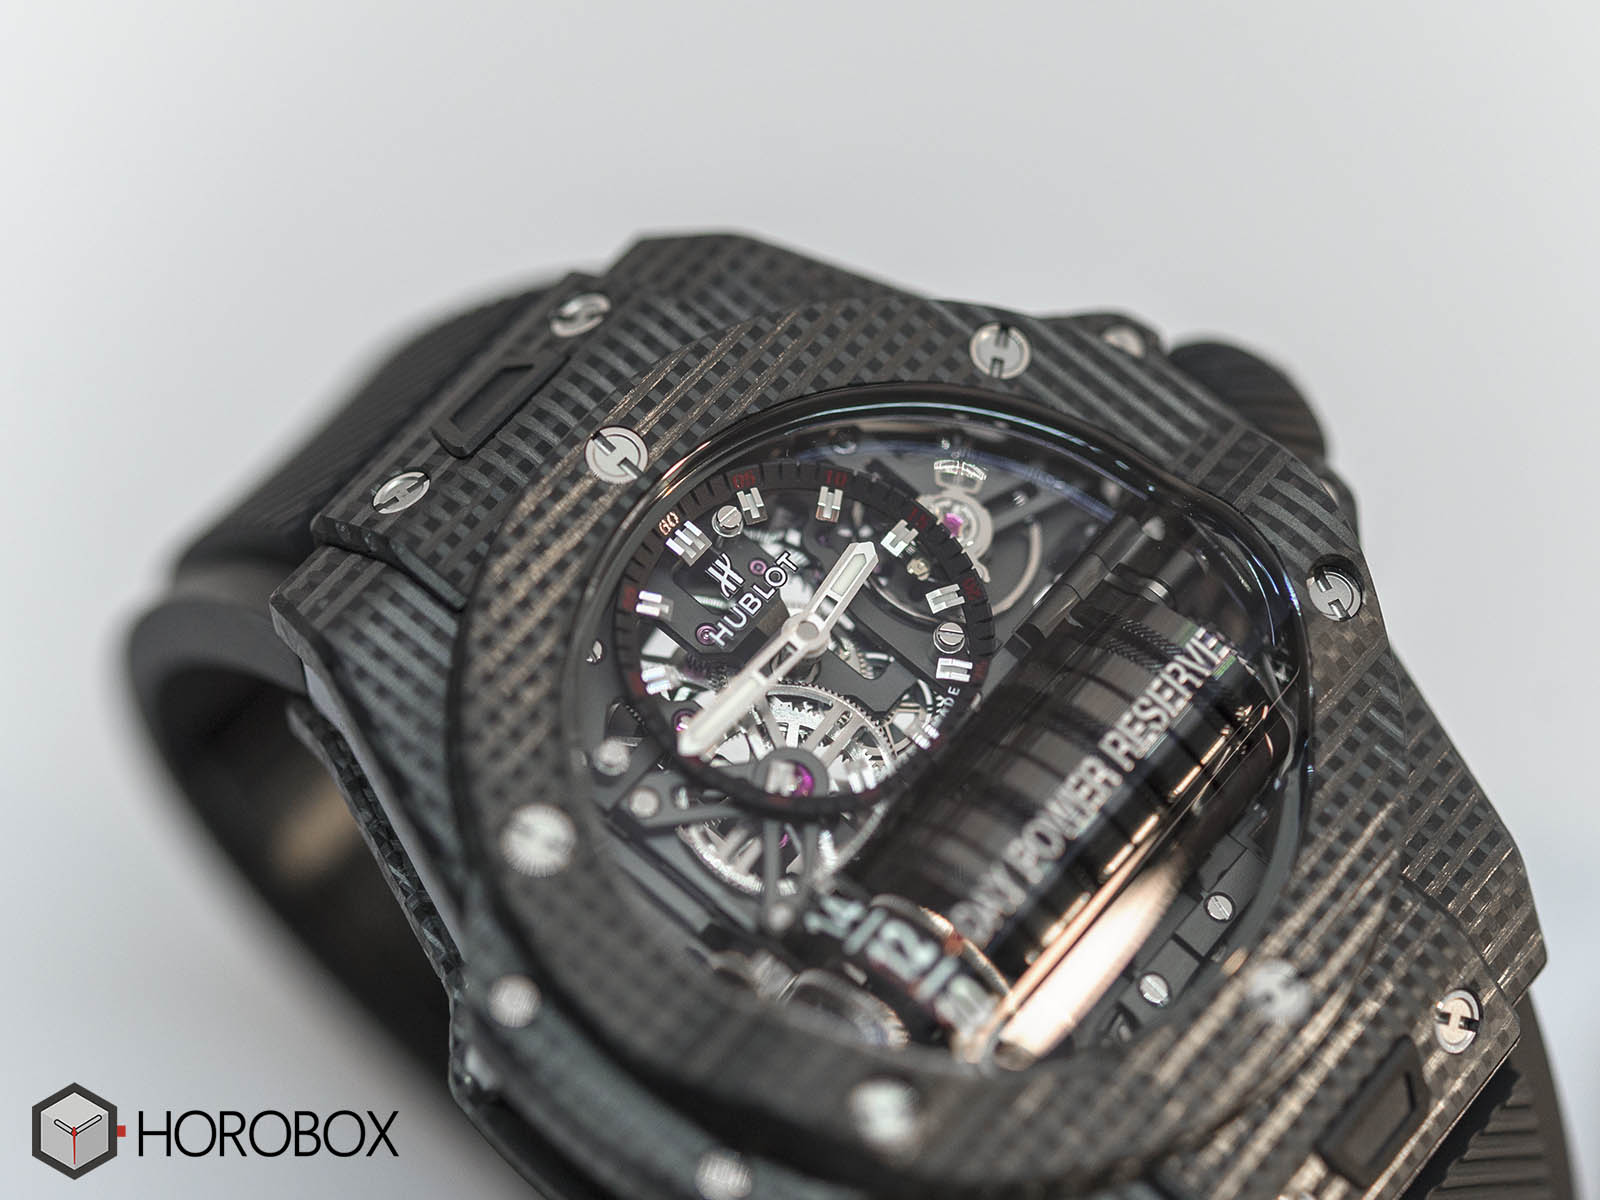 911-qd-0123-rx-hublot-mp-11-power-reserve-14-days-10.jpg